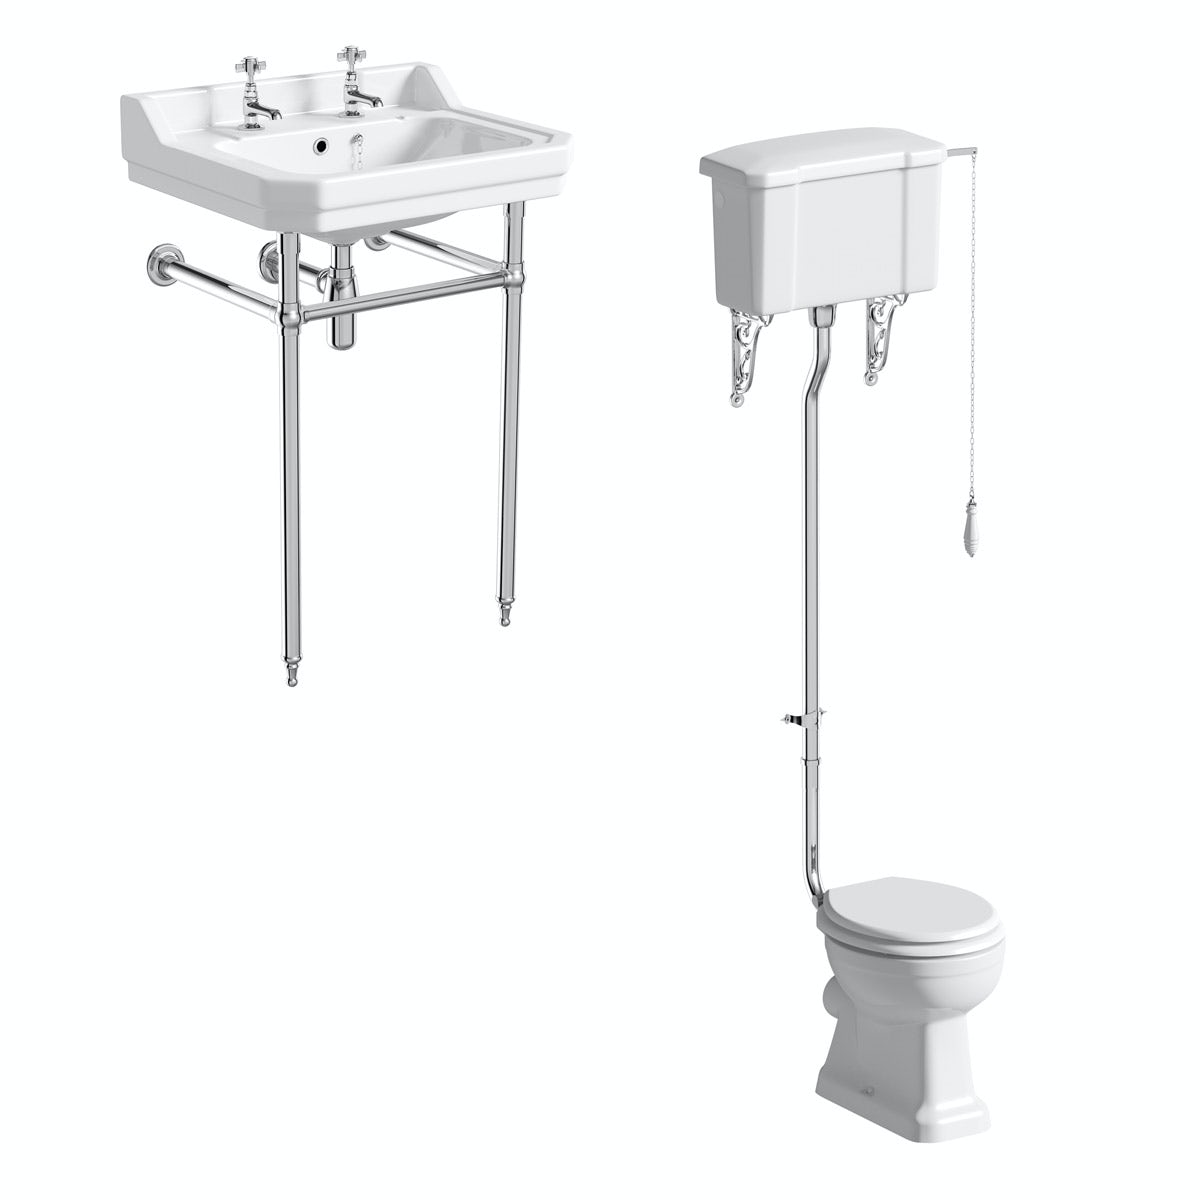 The Bath Co. Camberley cloakroom high level suite with white seat and washstand with basin